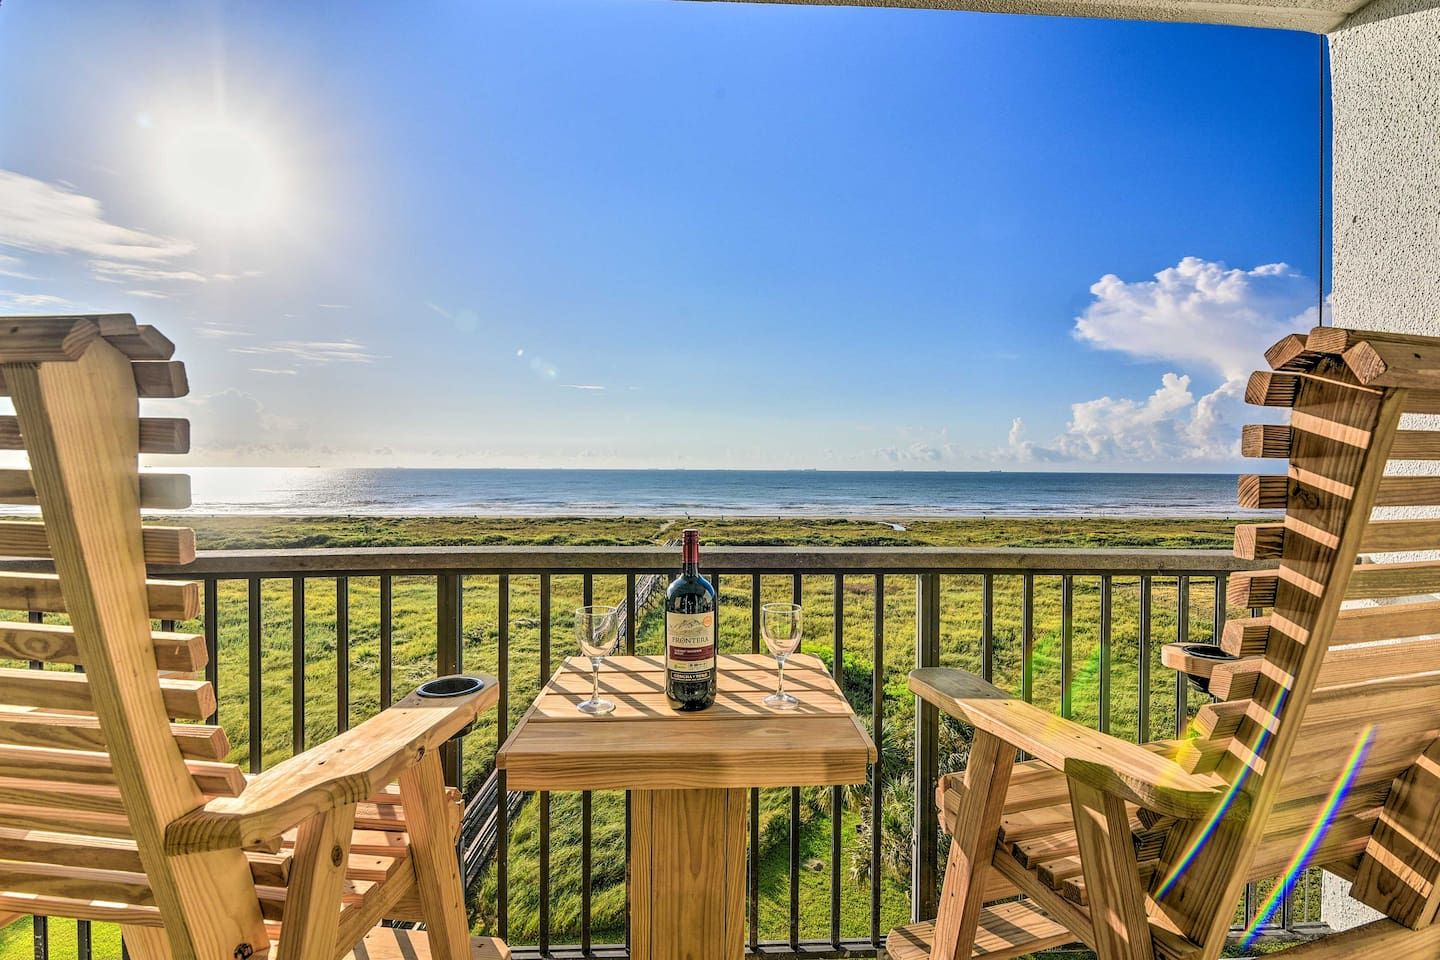 Get lost in the Gulf of Mexico views visible from the entire studio!